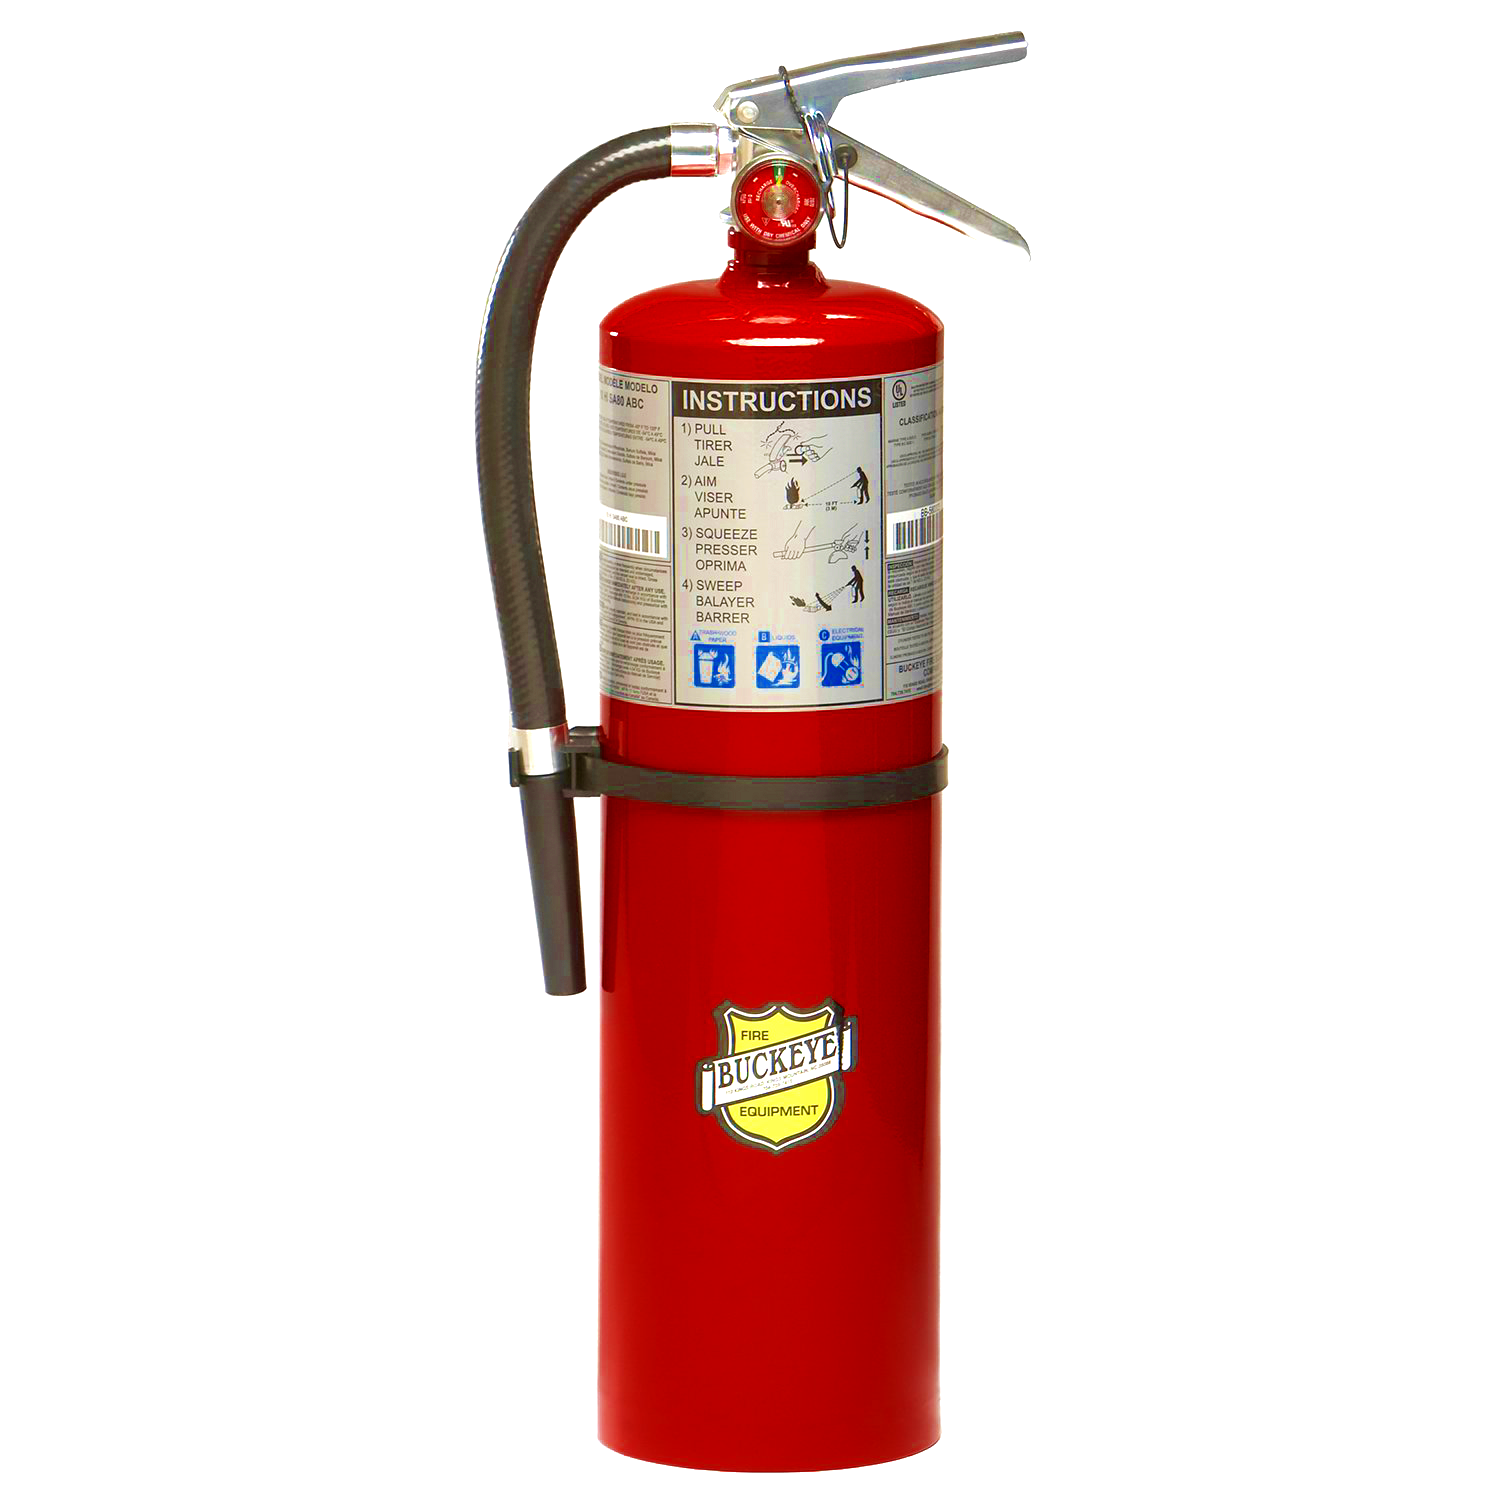 Buckeye, Fire Extinguisher, 10lb ABC Fire Extinguisher, Multipurpose Dry Chemical, Industrial, Commercial Fire Extinguisher, Aluminum Valve, Wall Bracket, 11340, Monthly Record Tag